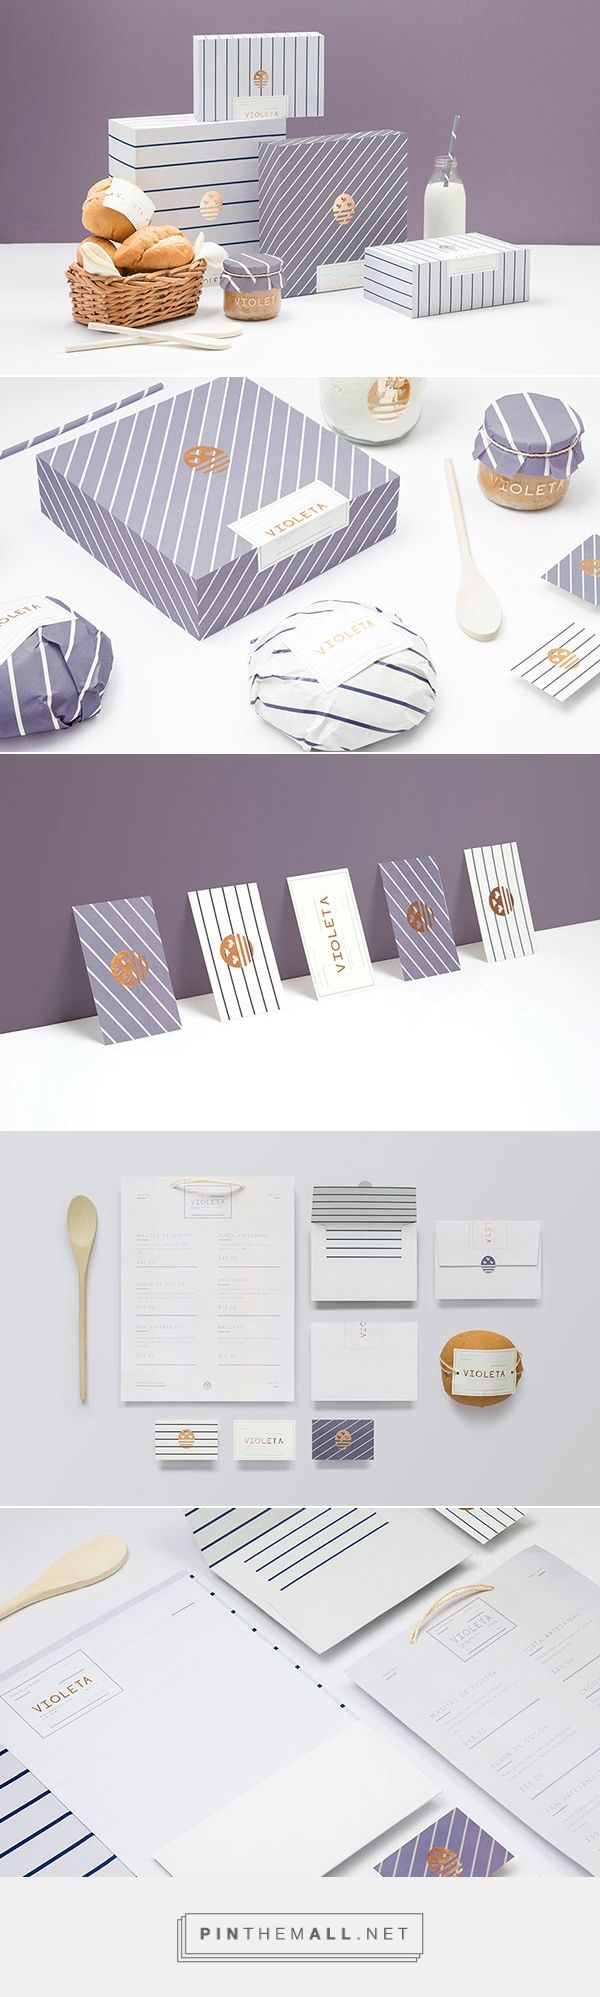 Bakery Brand Identity by Anagrama for Violeta                                                                                                                                                                                 More